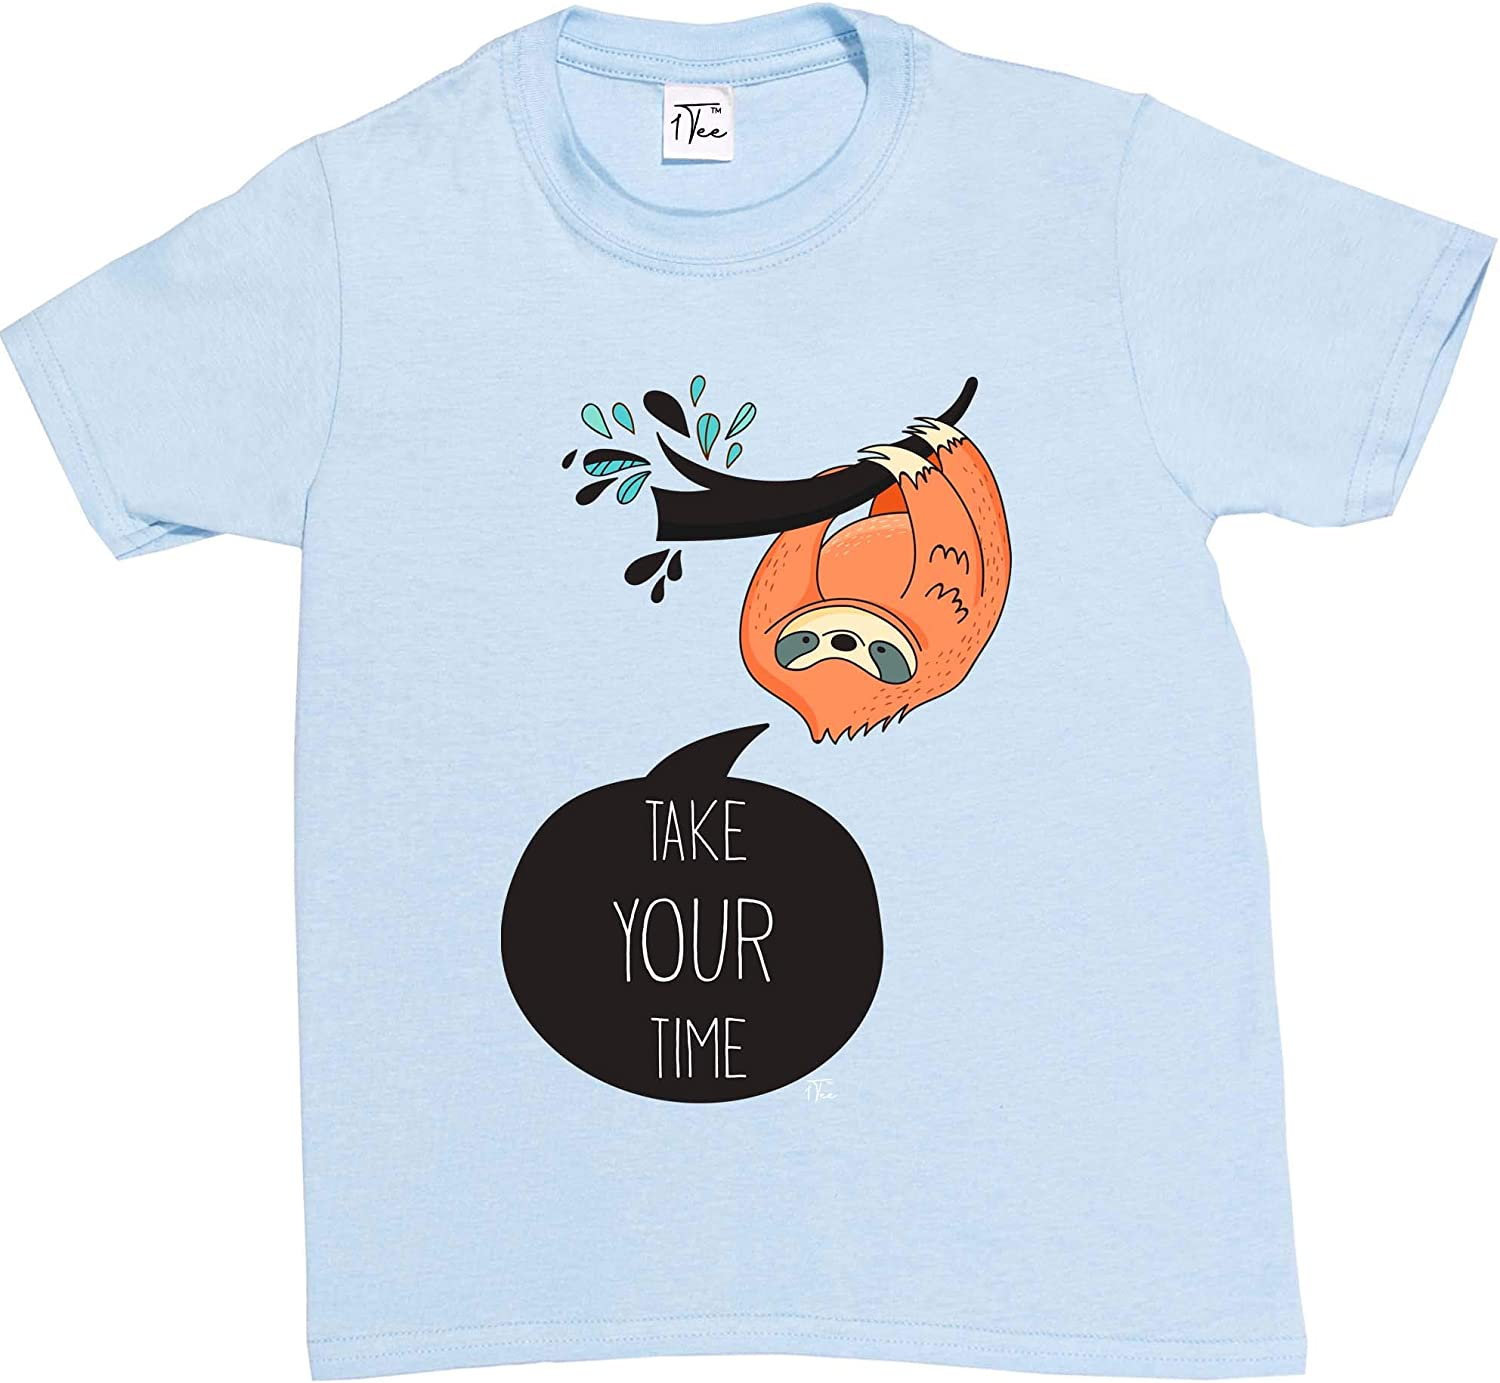 1Tee Womens Take Your Time Sloth T-Shirt